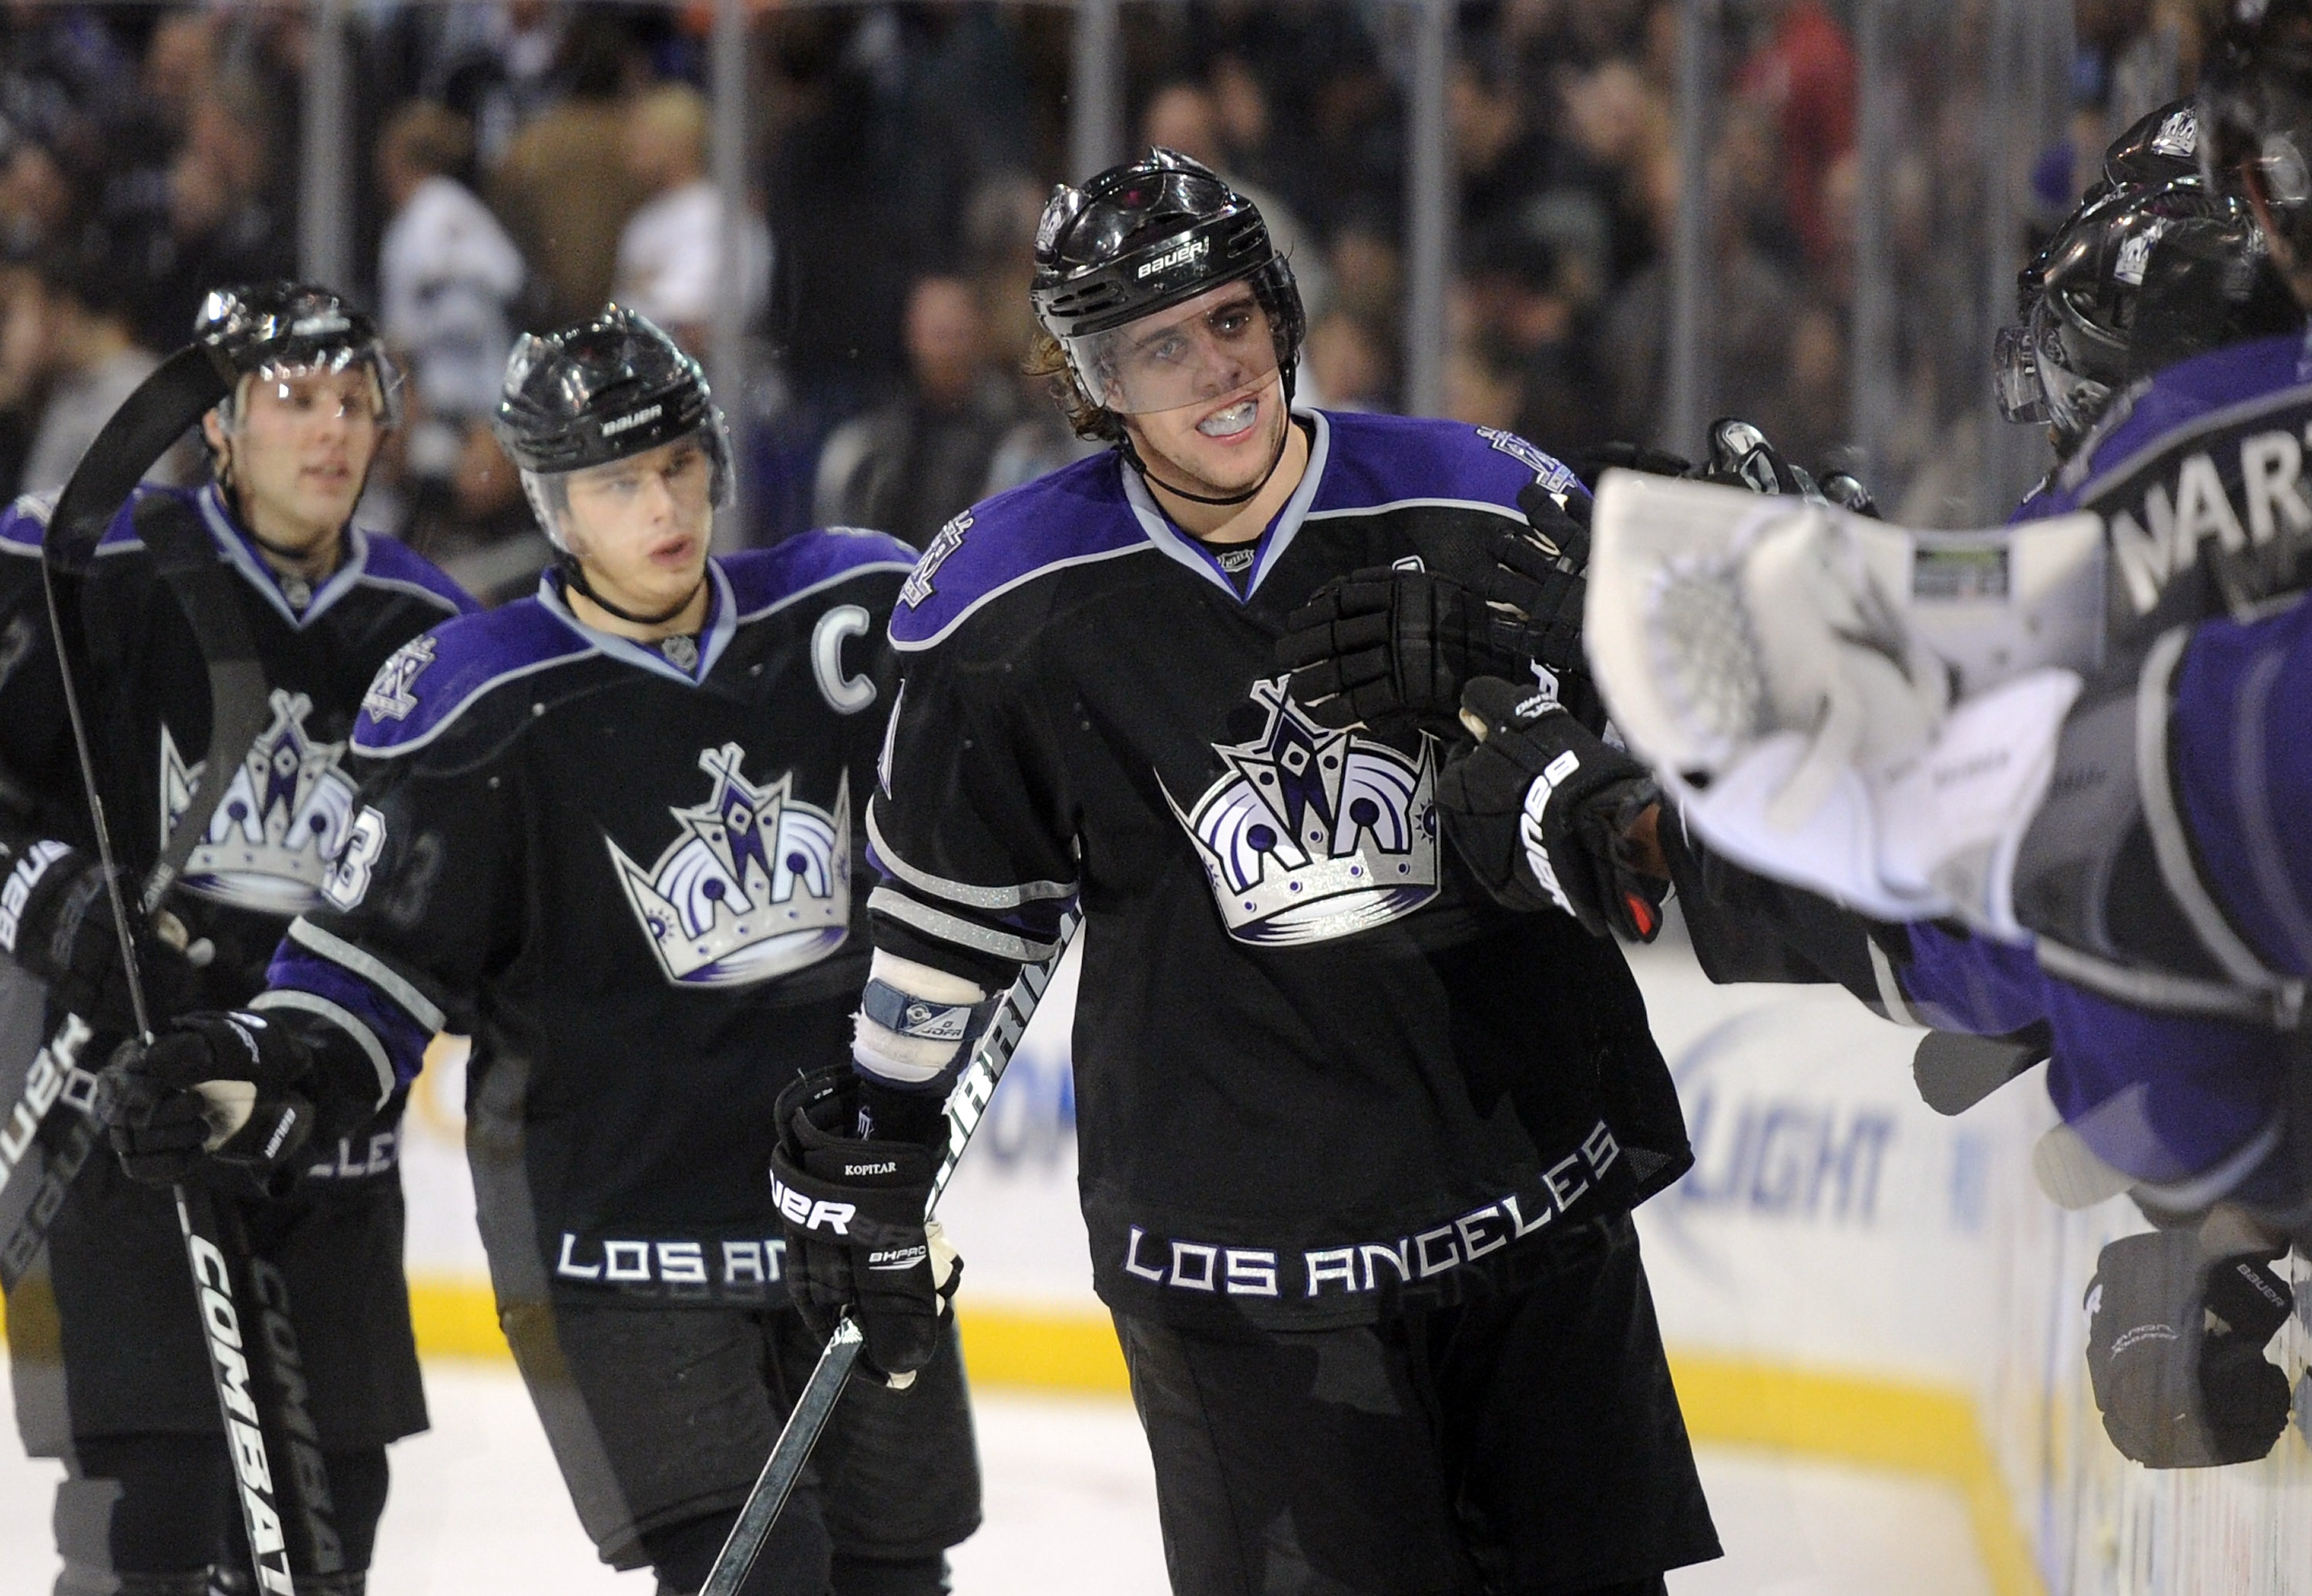 LOS ANGELES, CA - DECEMBER 02:  Anze Kopitar #11 of the Los Angeles Kings celebrates his goal with the bench for a 3-2 win over the Florida Panthers at the Staples Center on December 2, 2010 in Los Angeles, California.  (Photo by Harry How/Getty Images)